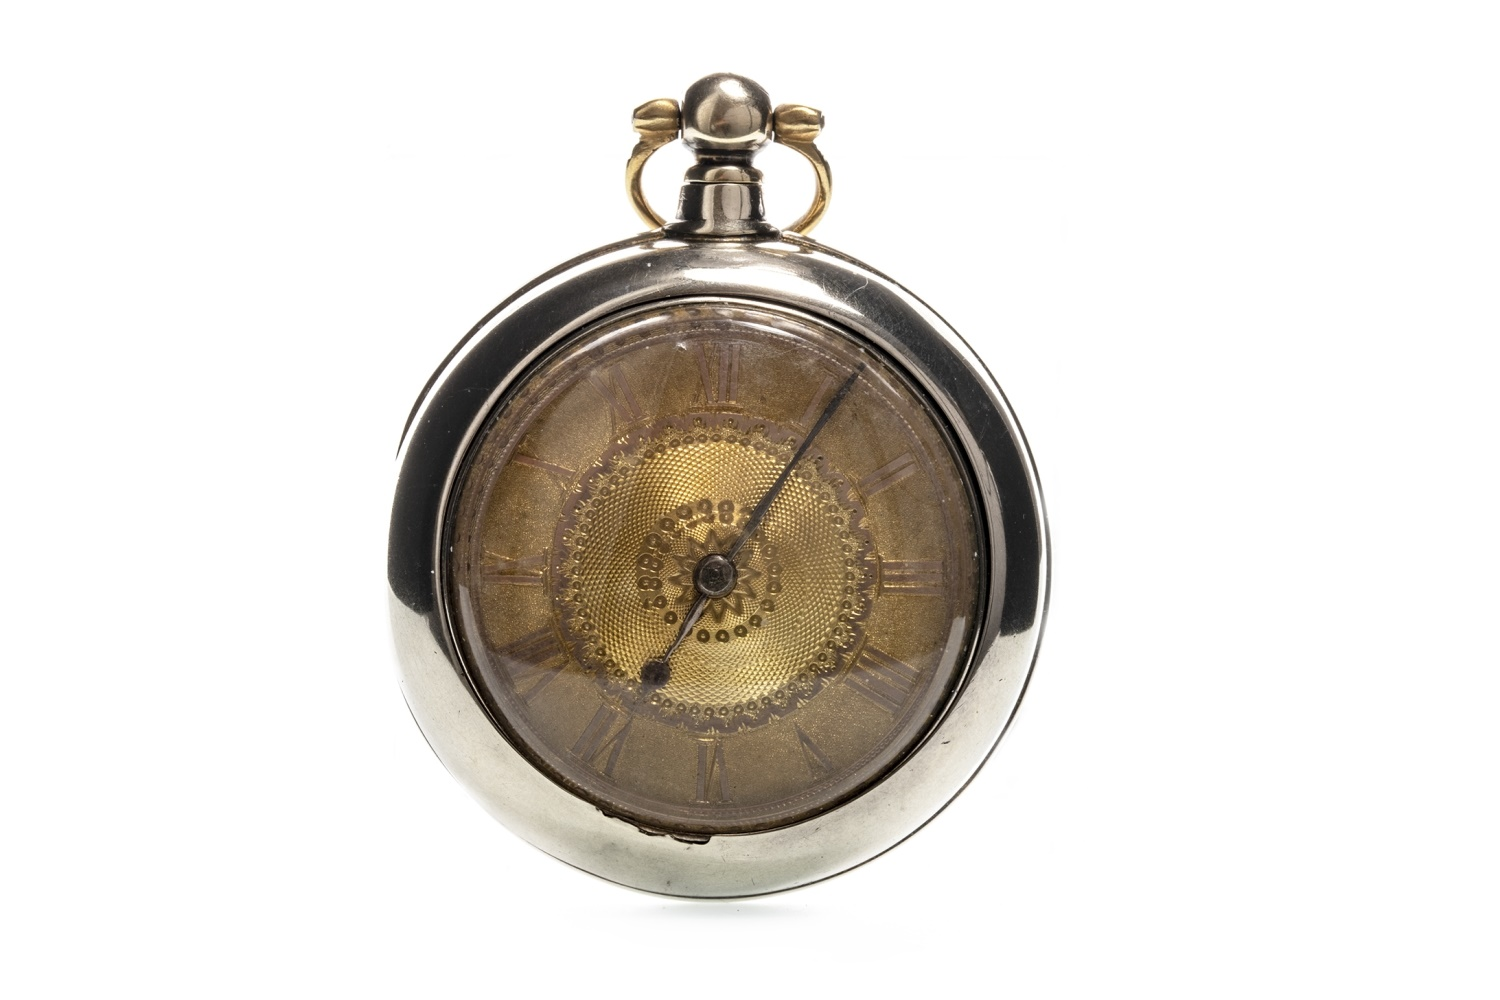 Lot 724 - AN OPEN FACE POCKET WATCH